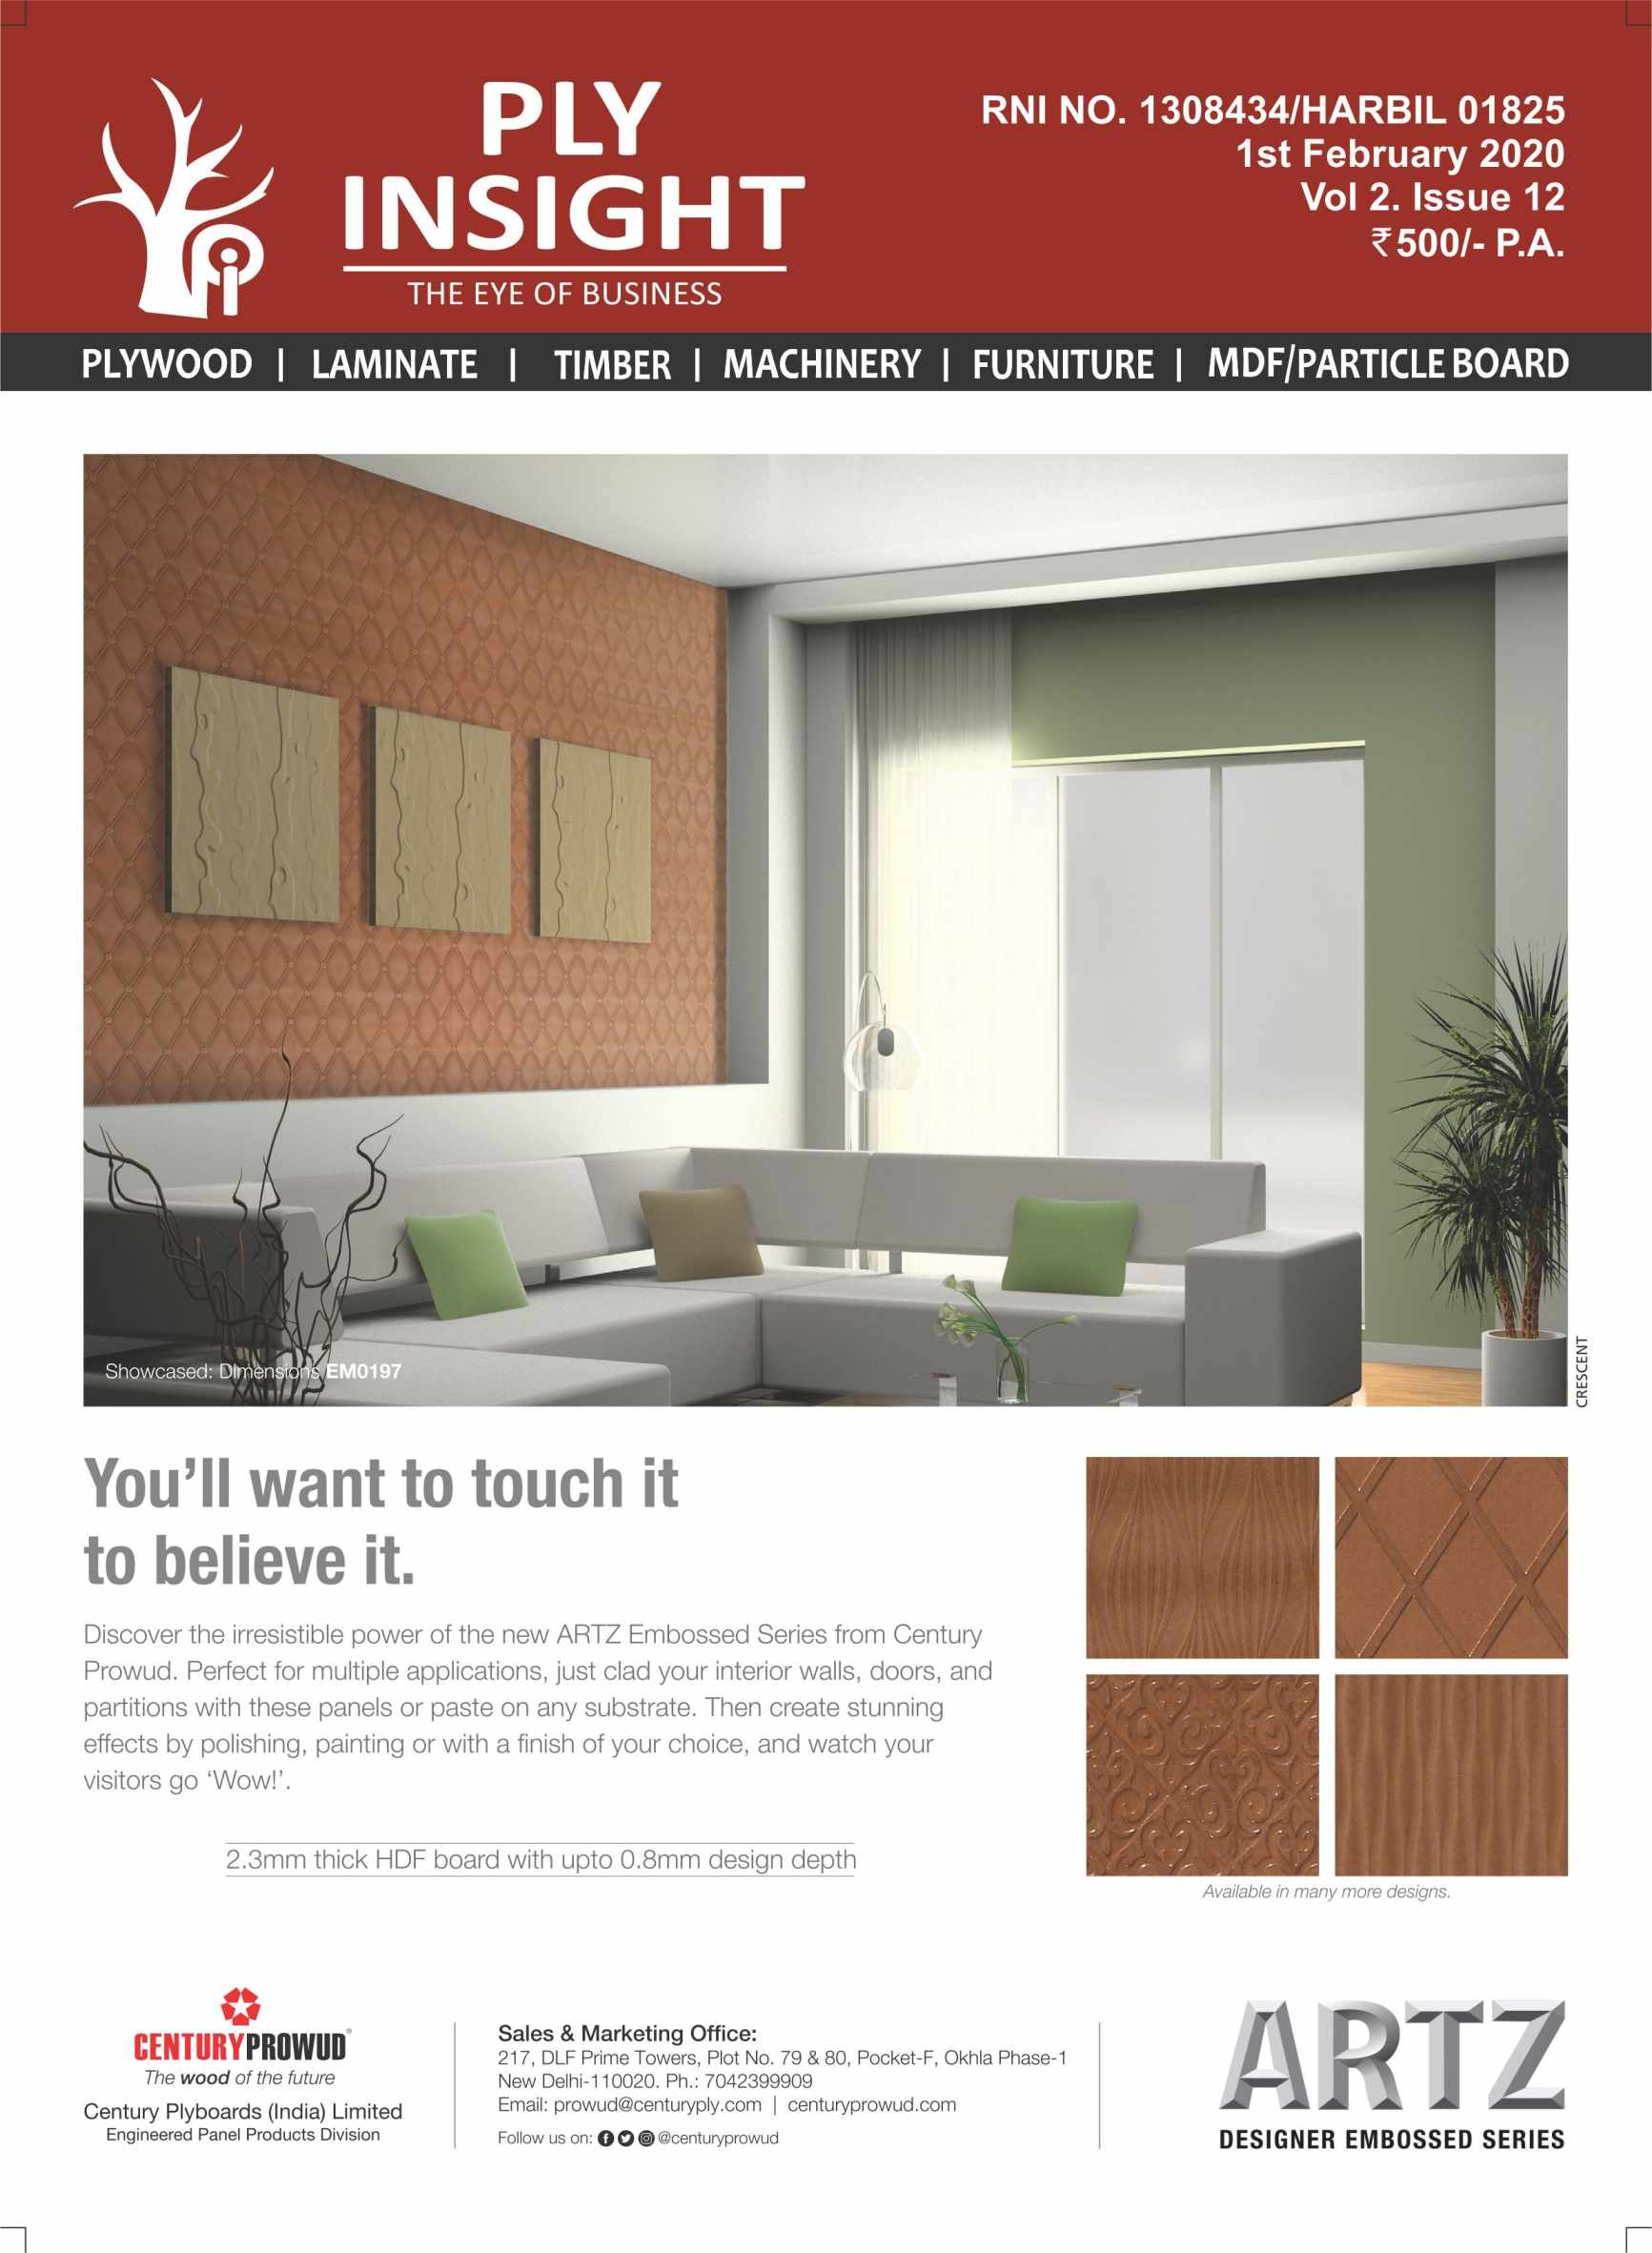 ply insight February issue